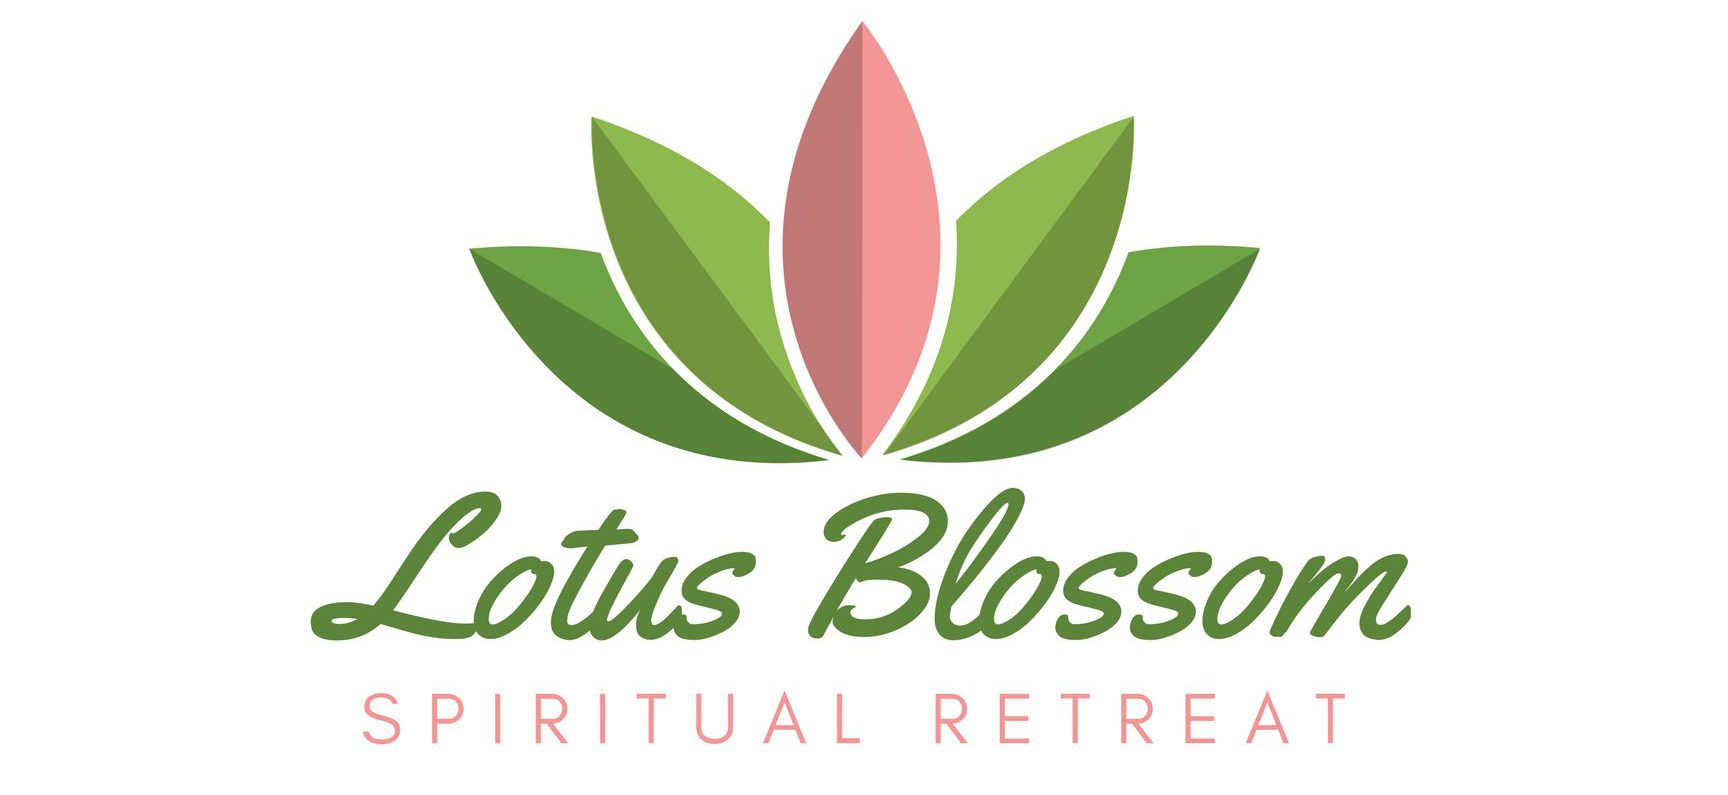 Lotus Blossom Spiritual Retreat